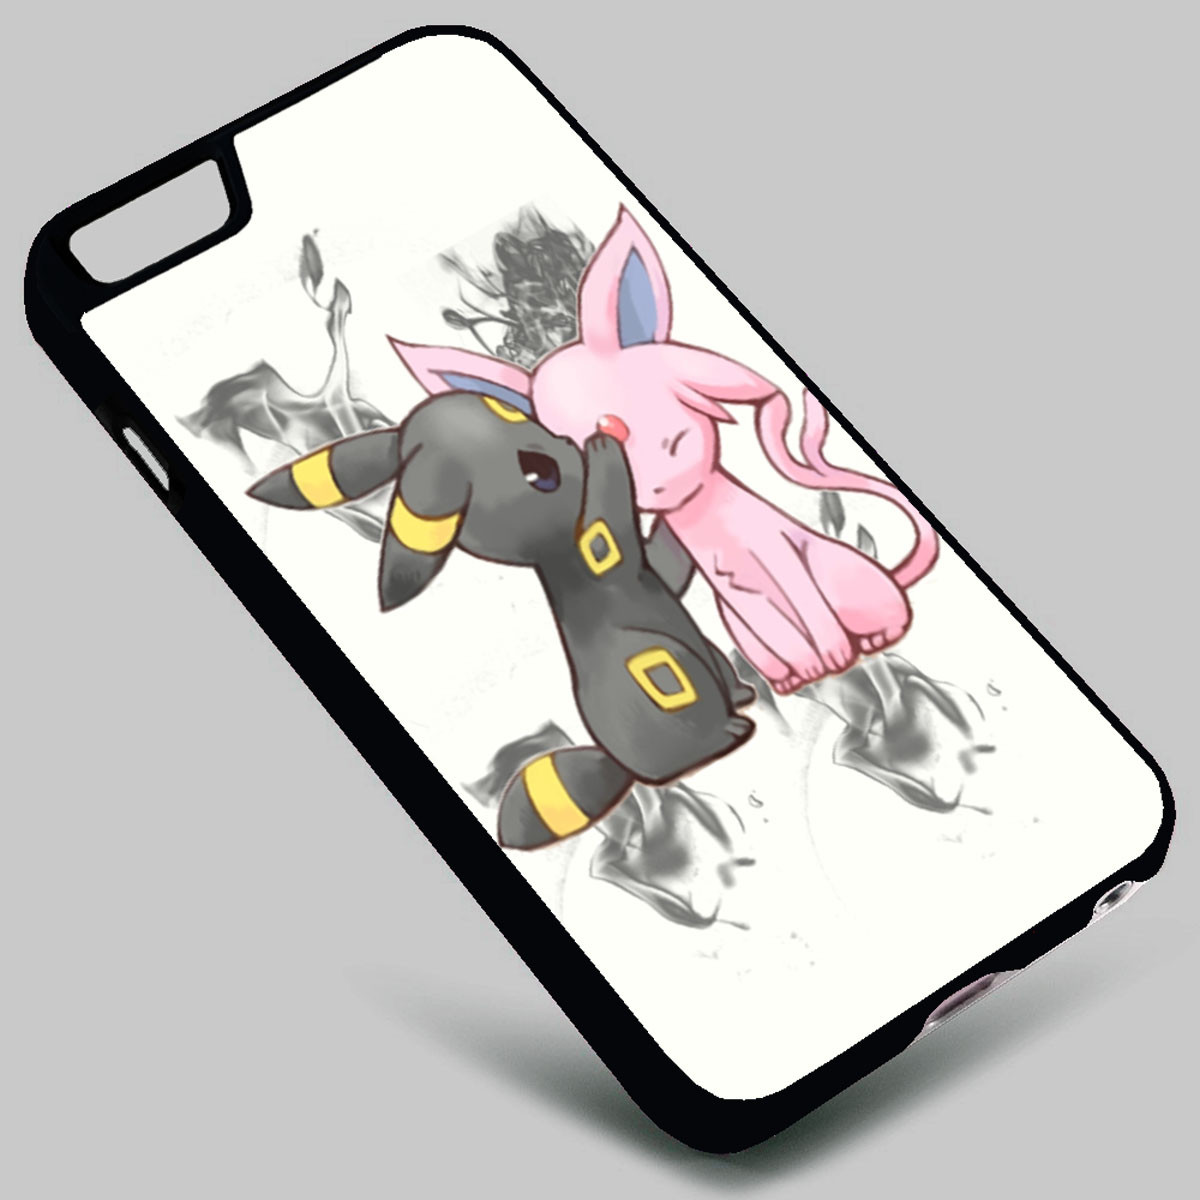 premium selection 6dd4a d3798 Espeon and Umbreon Pokemon on your case iphone 4 4s 5 5s 5c 6 6plus 7  Samsung Galaxy s3 s4 s5 s6 s7 HTC Case